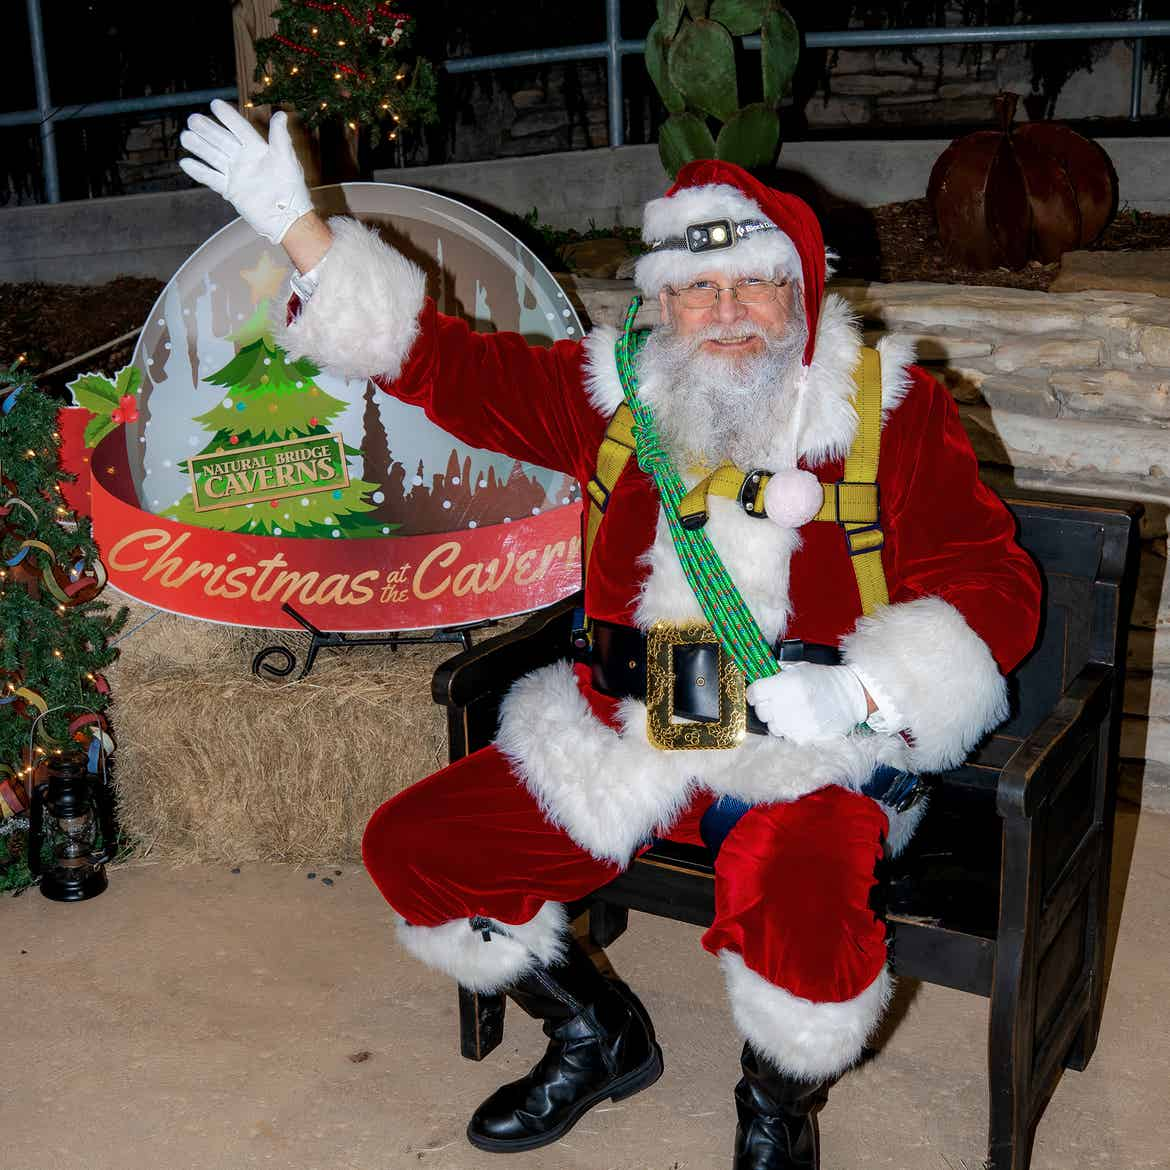 Santa 'Spelunker' Clause sits wearing his red suit, and climbing harness while waving to guests from a black bench in front of a snow globe that reads, 'Christmas & Caverns.'